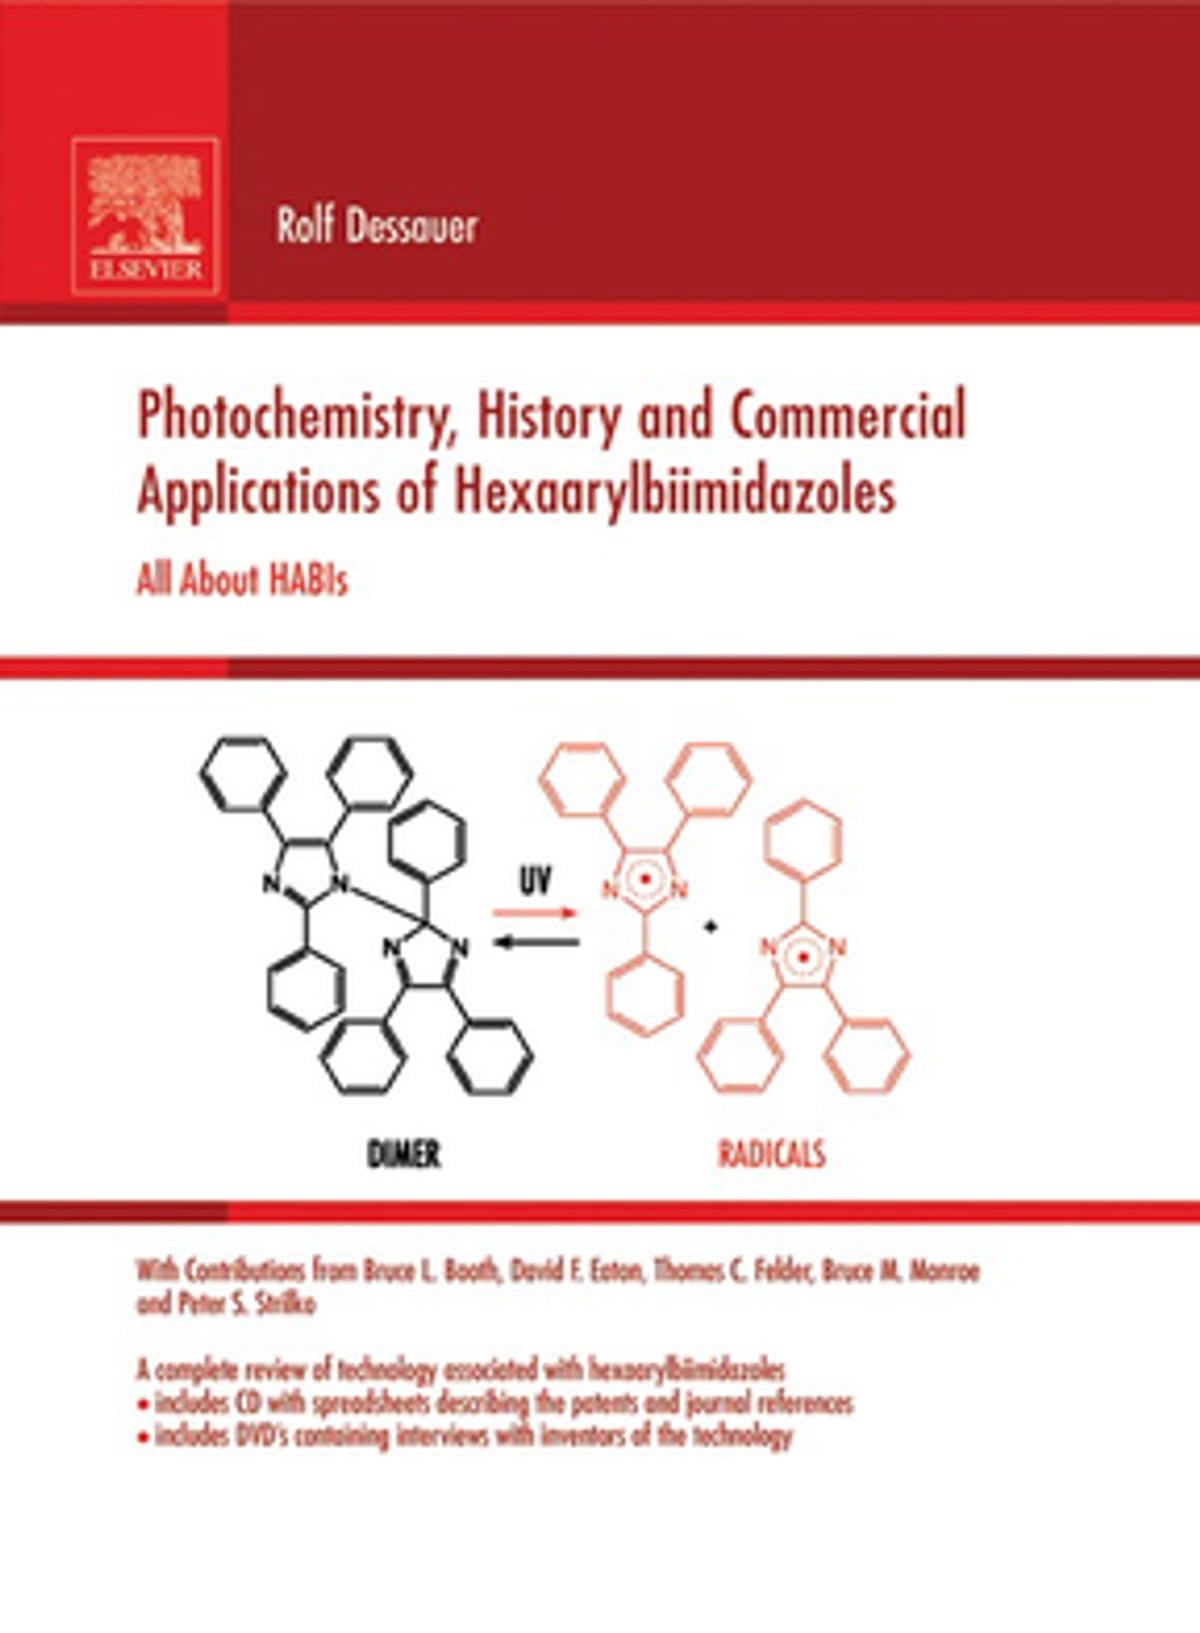 Photochemistry, History and Commercial Applications of Hexaarylbiimidazoles  ebook by Rolf Dessauer - Rakuten Kobo